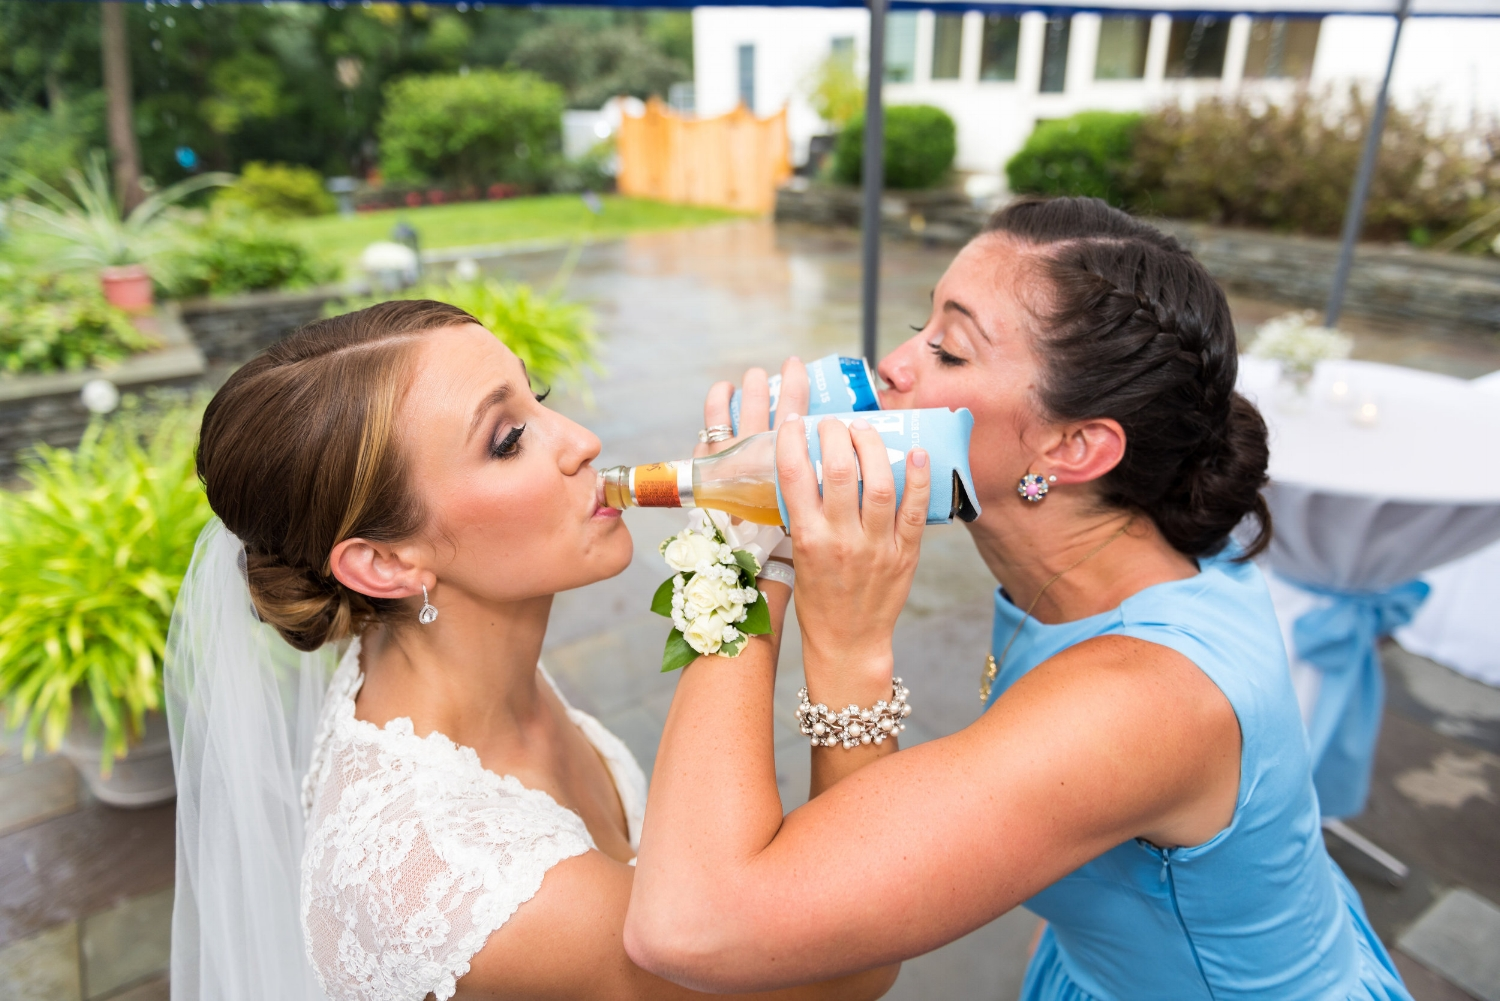 The bride chugs with her maid of honor.